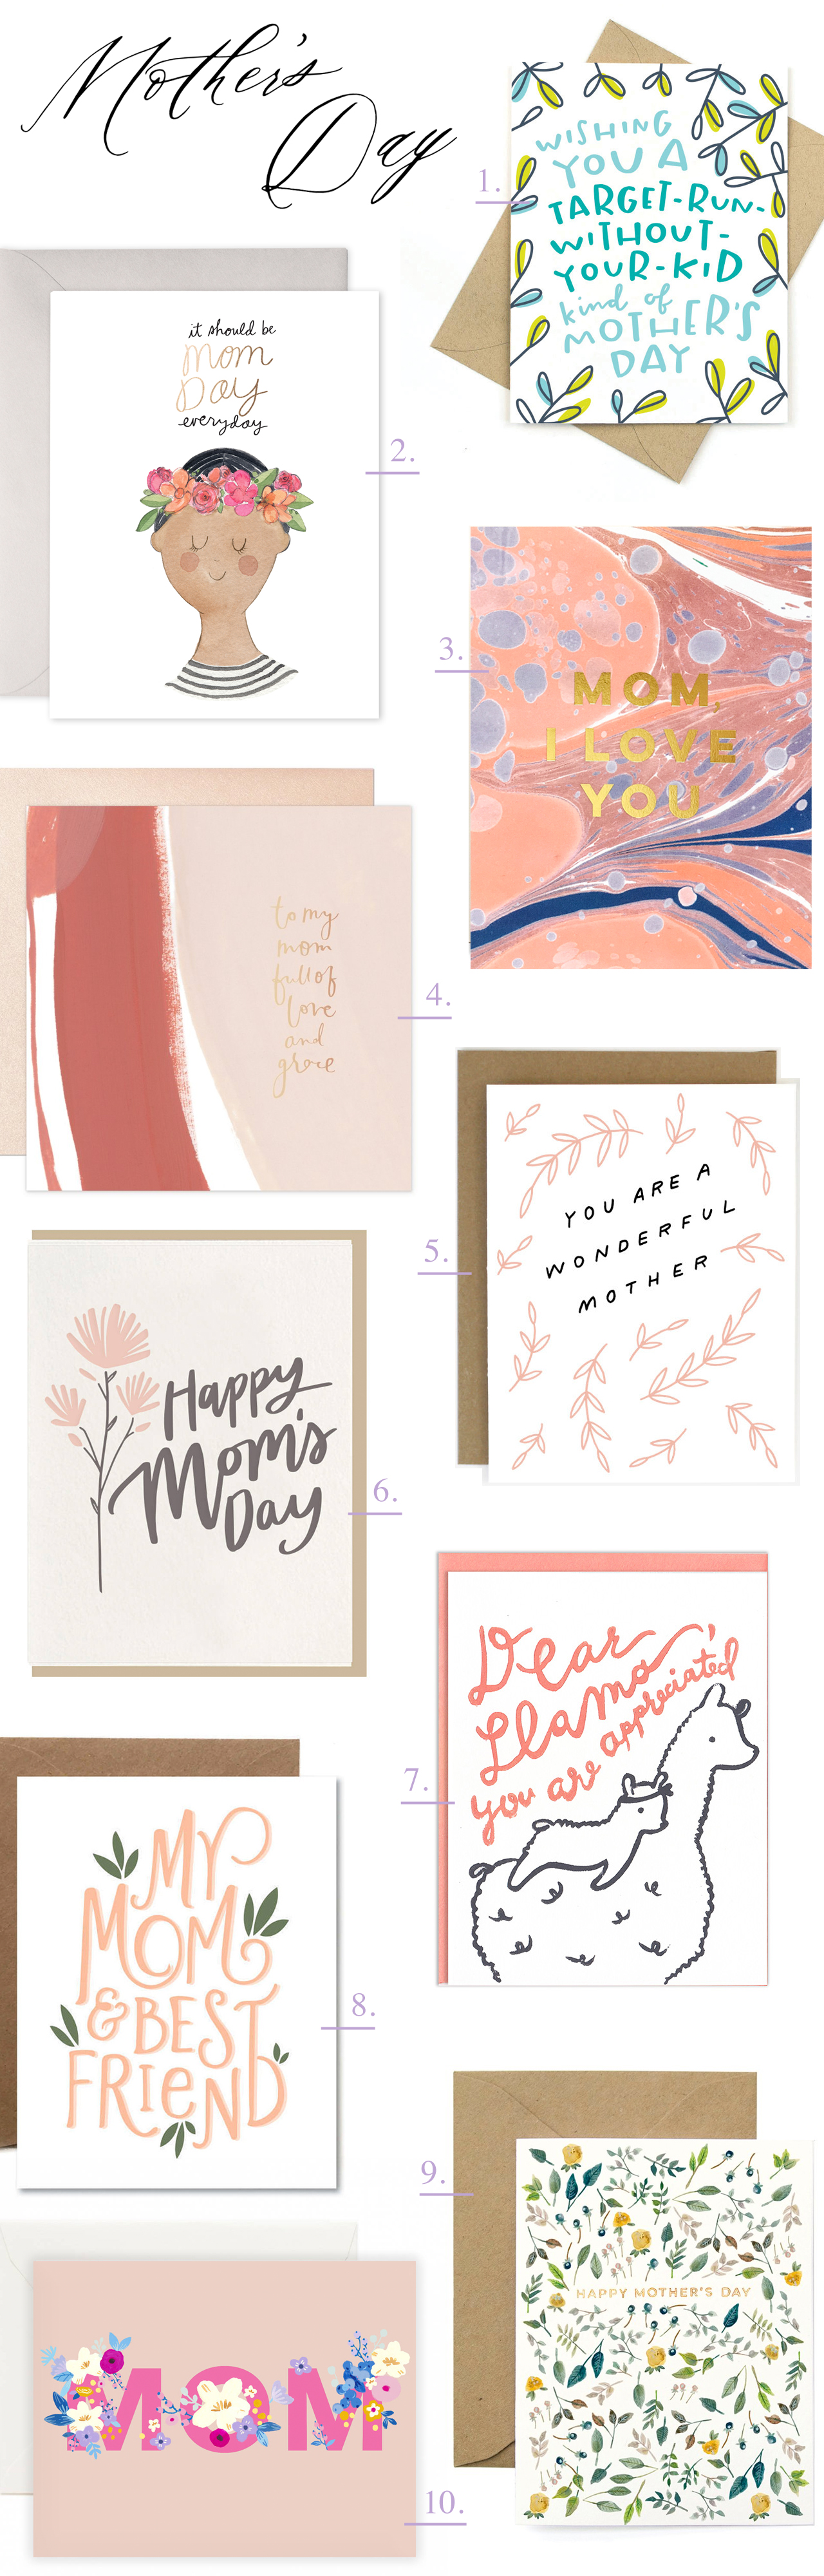 Ten Awesome Mother's Day Cards